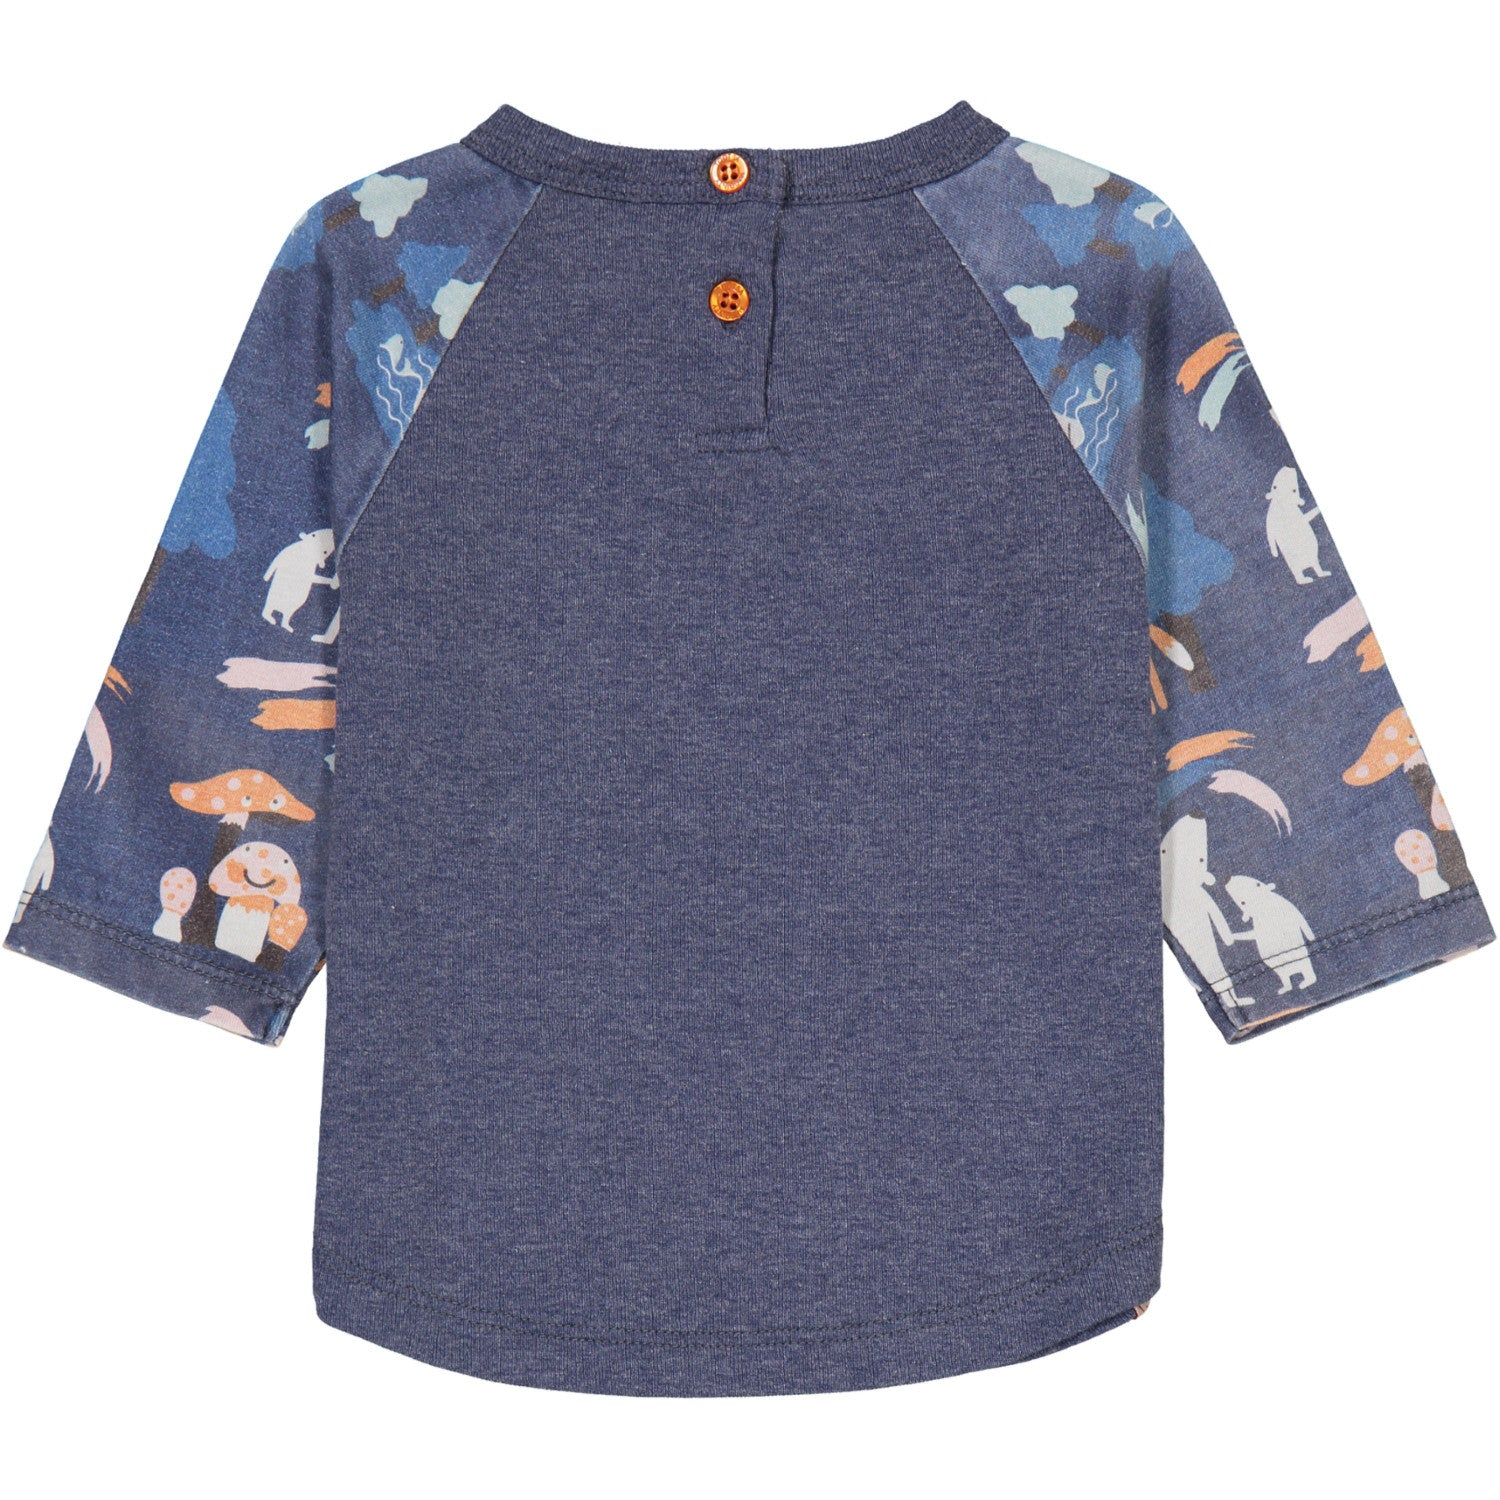 Heather Indigo Northern Lights Raglan Tee